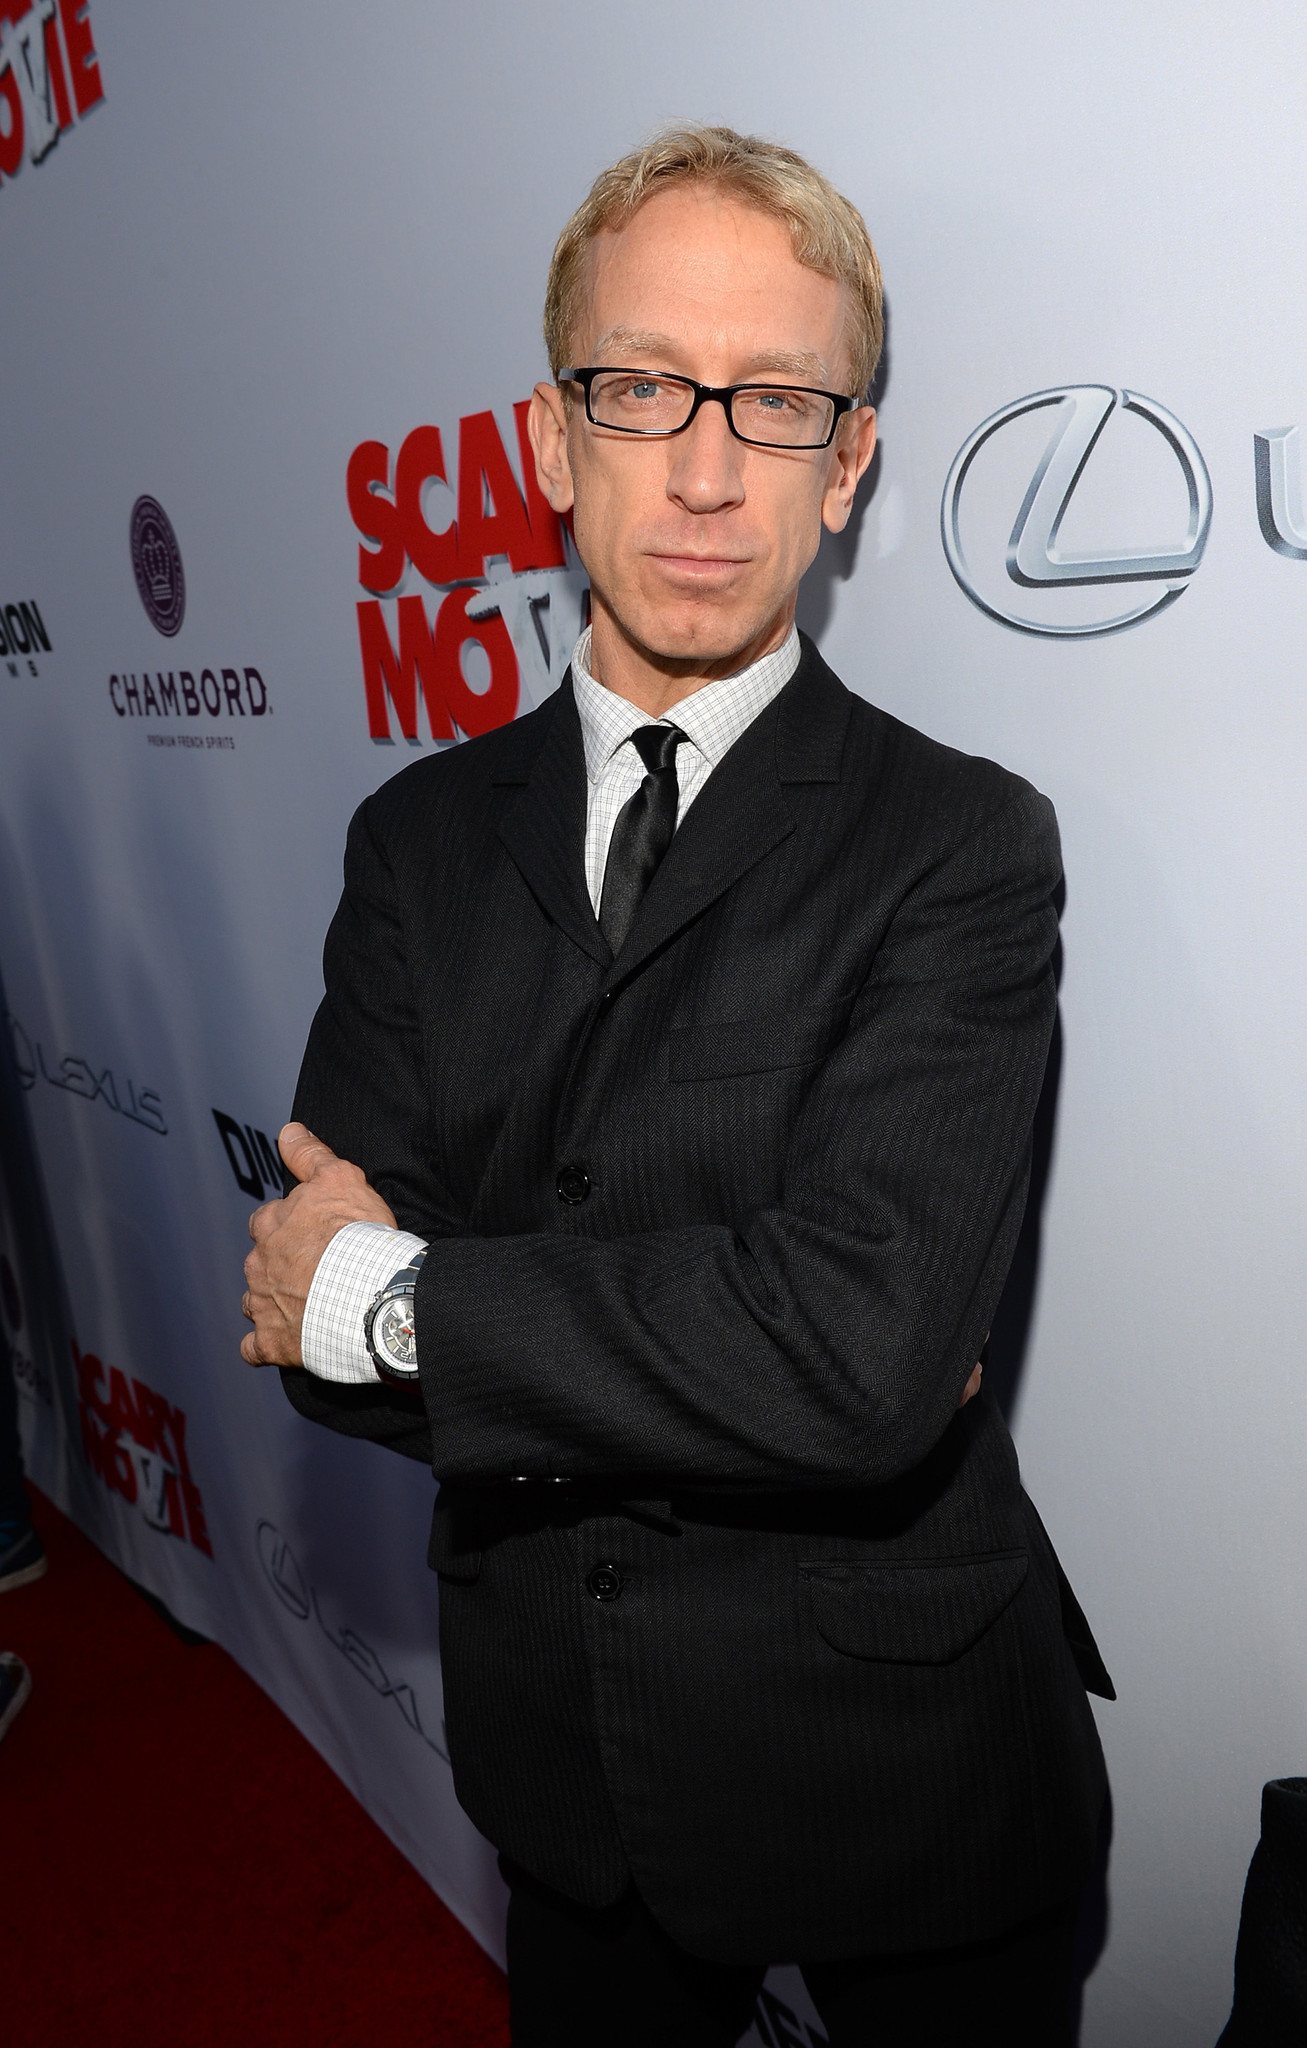 Really. agree andy dick charged business! excellent